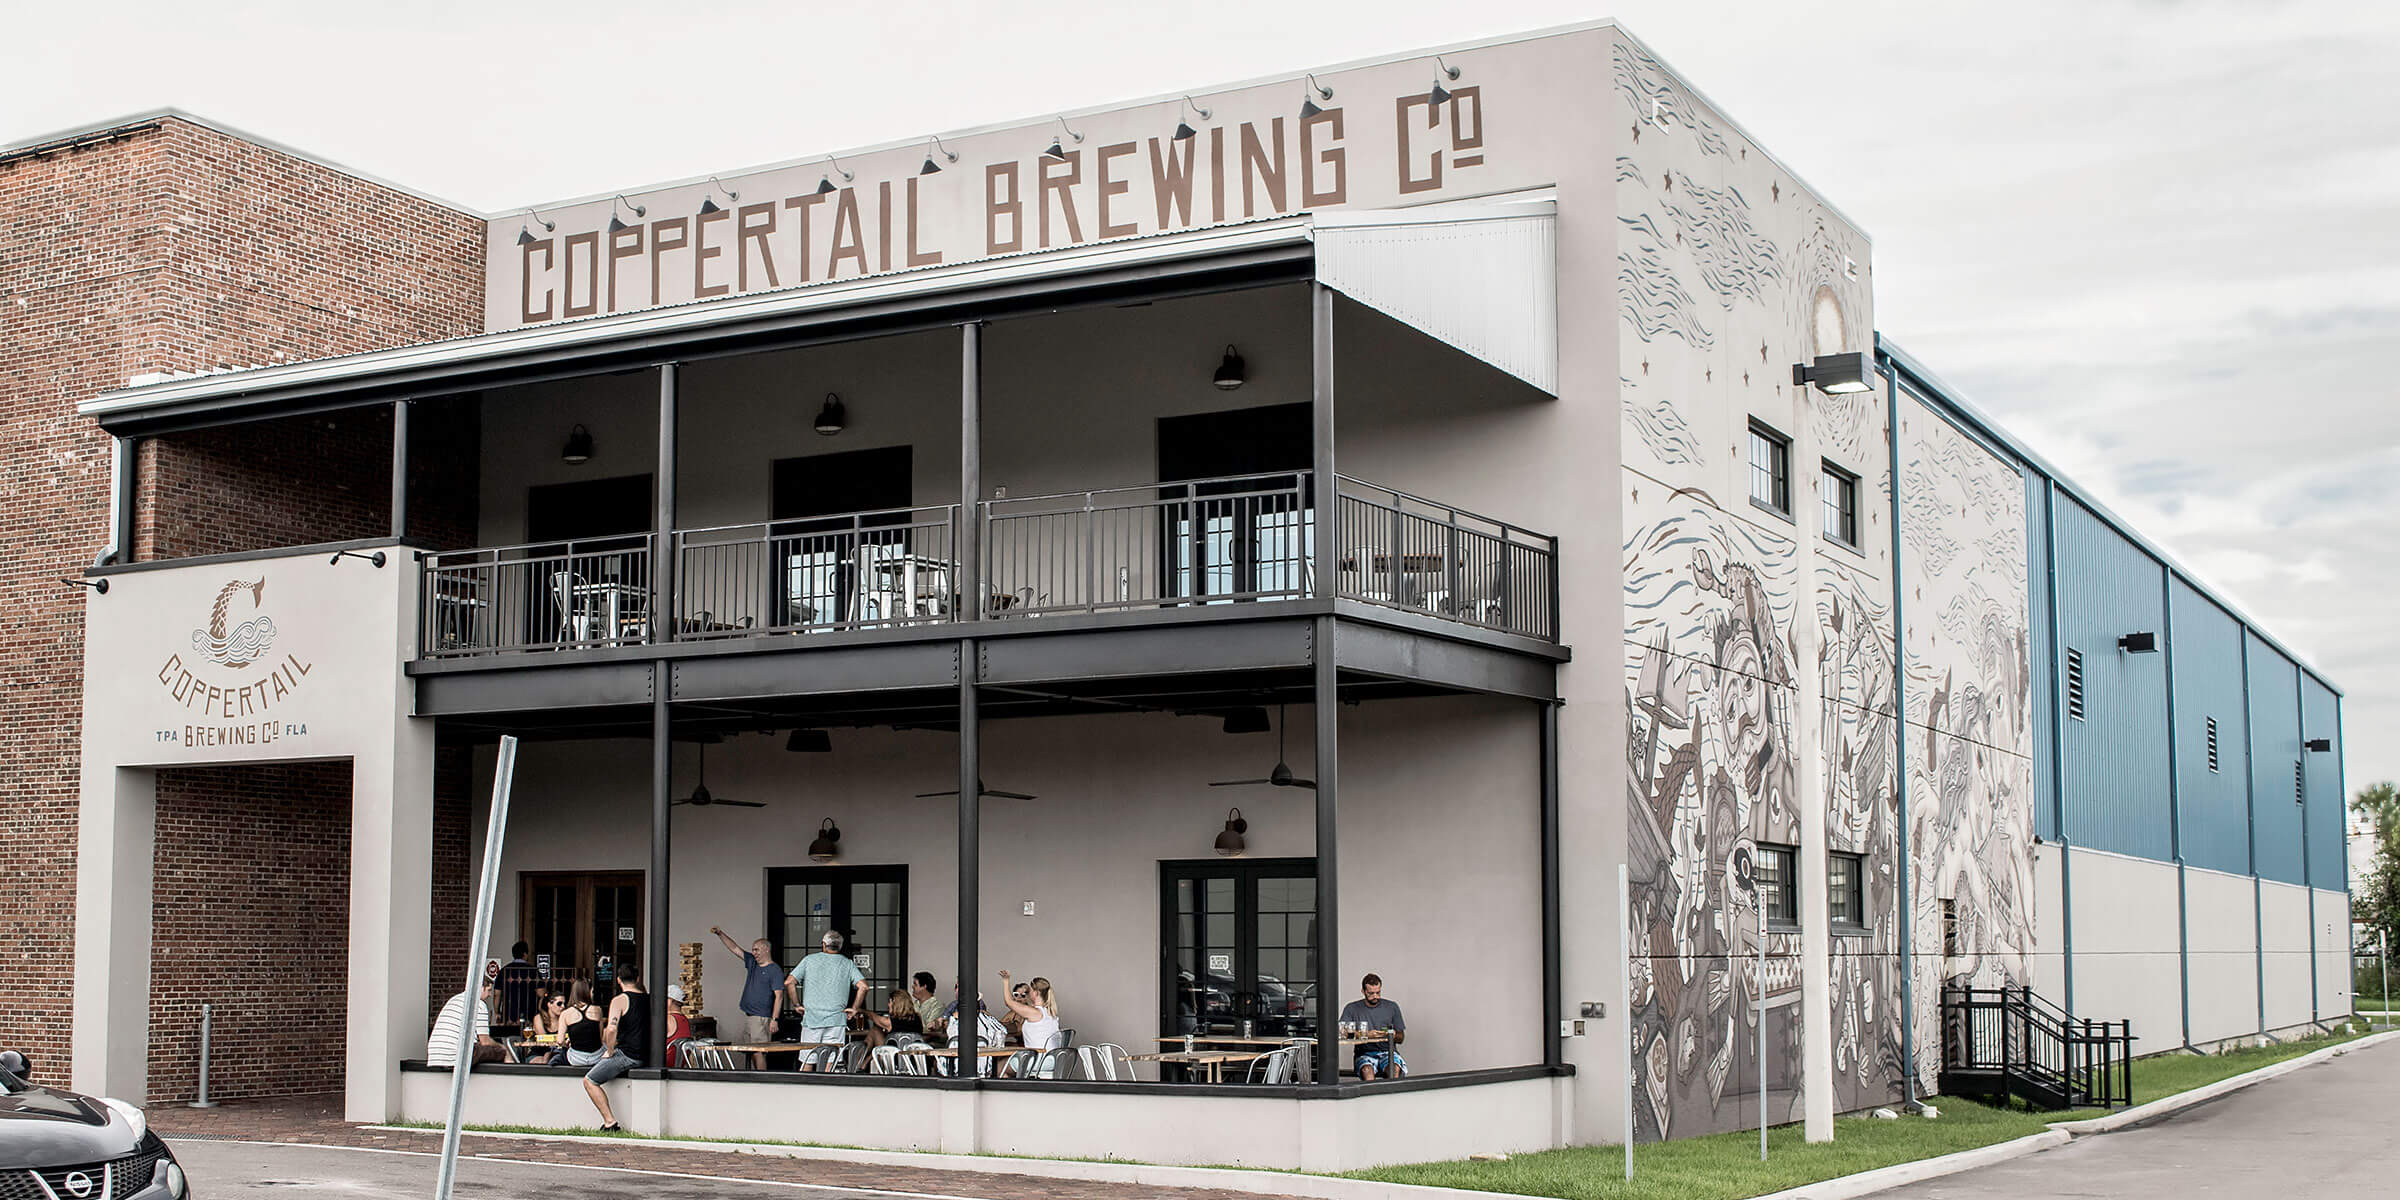 Outside the production brewery and tasting room at Coppertail Brewing Co. in Tampa, Florida